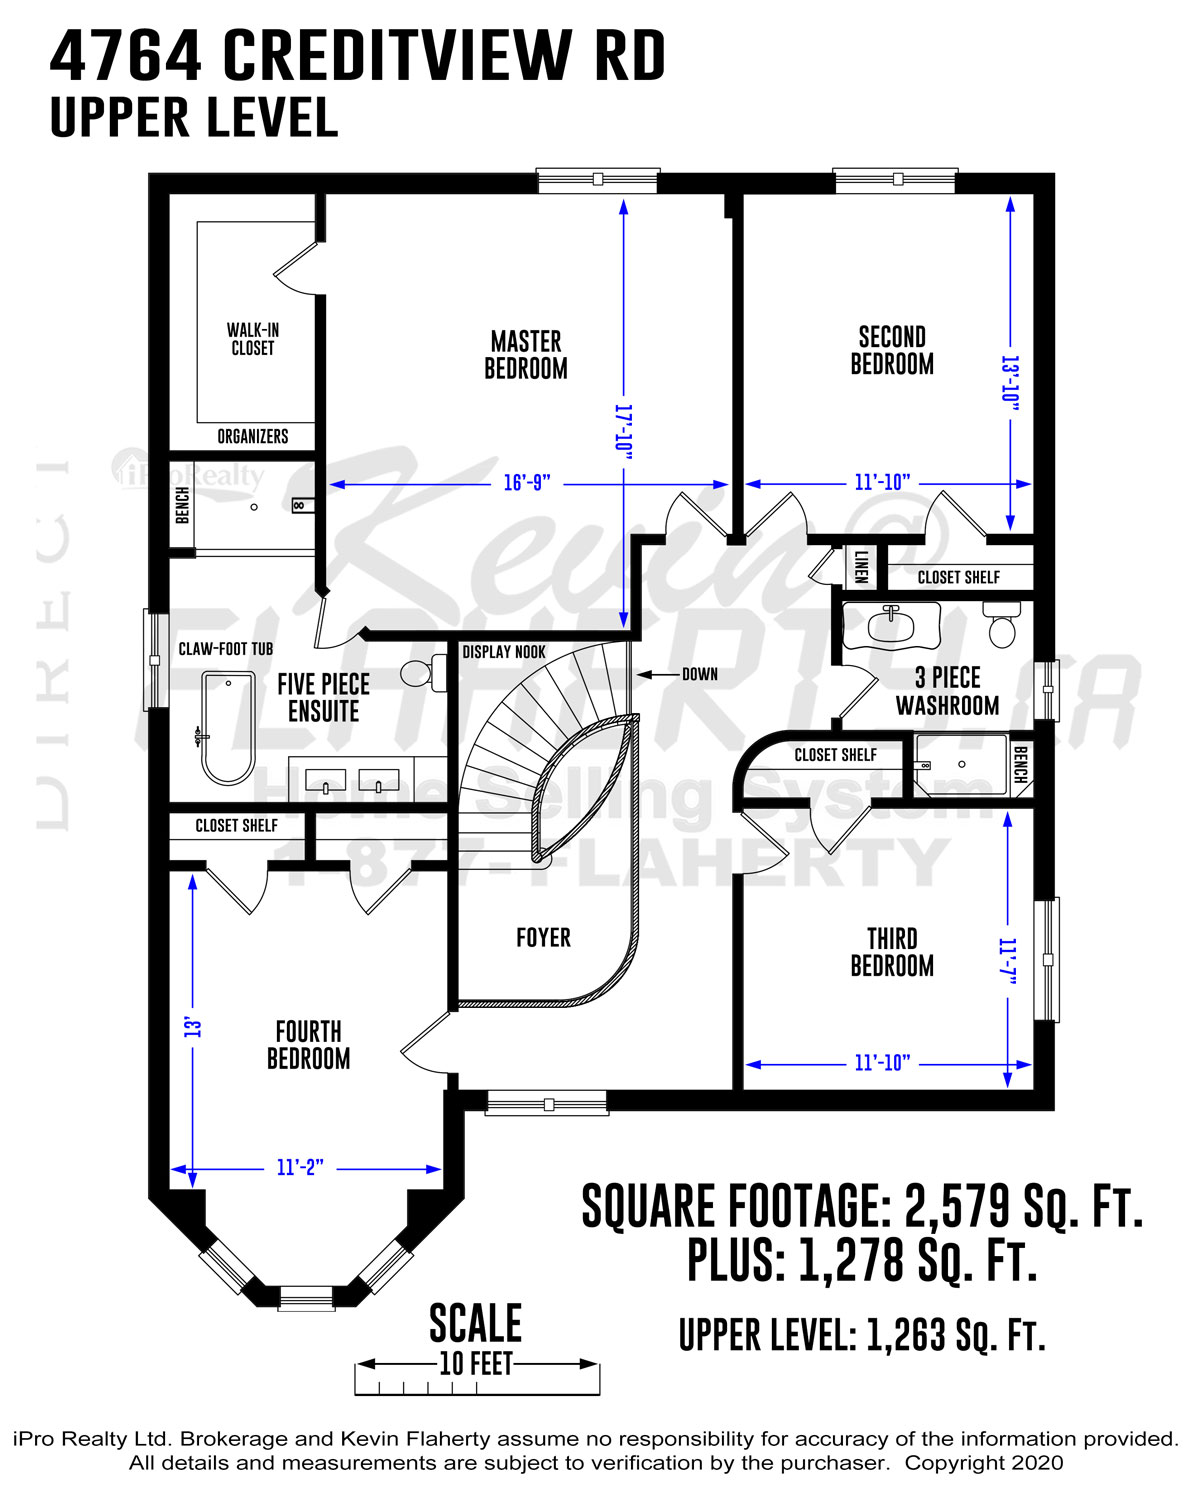 Floor Plans - Kevin Flaherty Real Estate